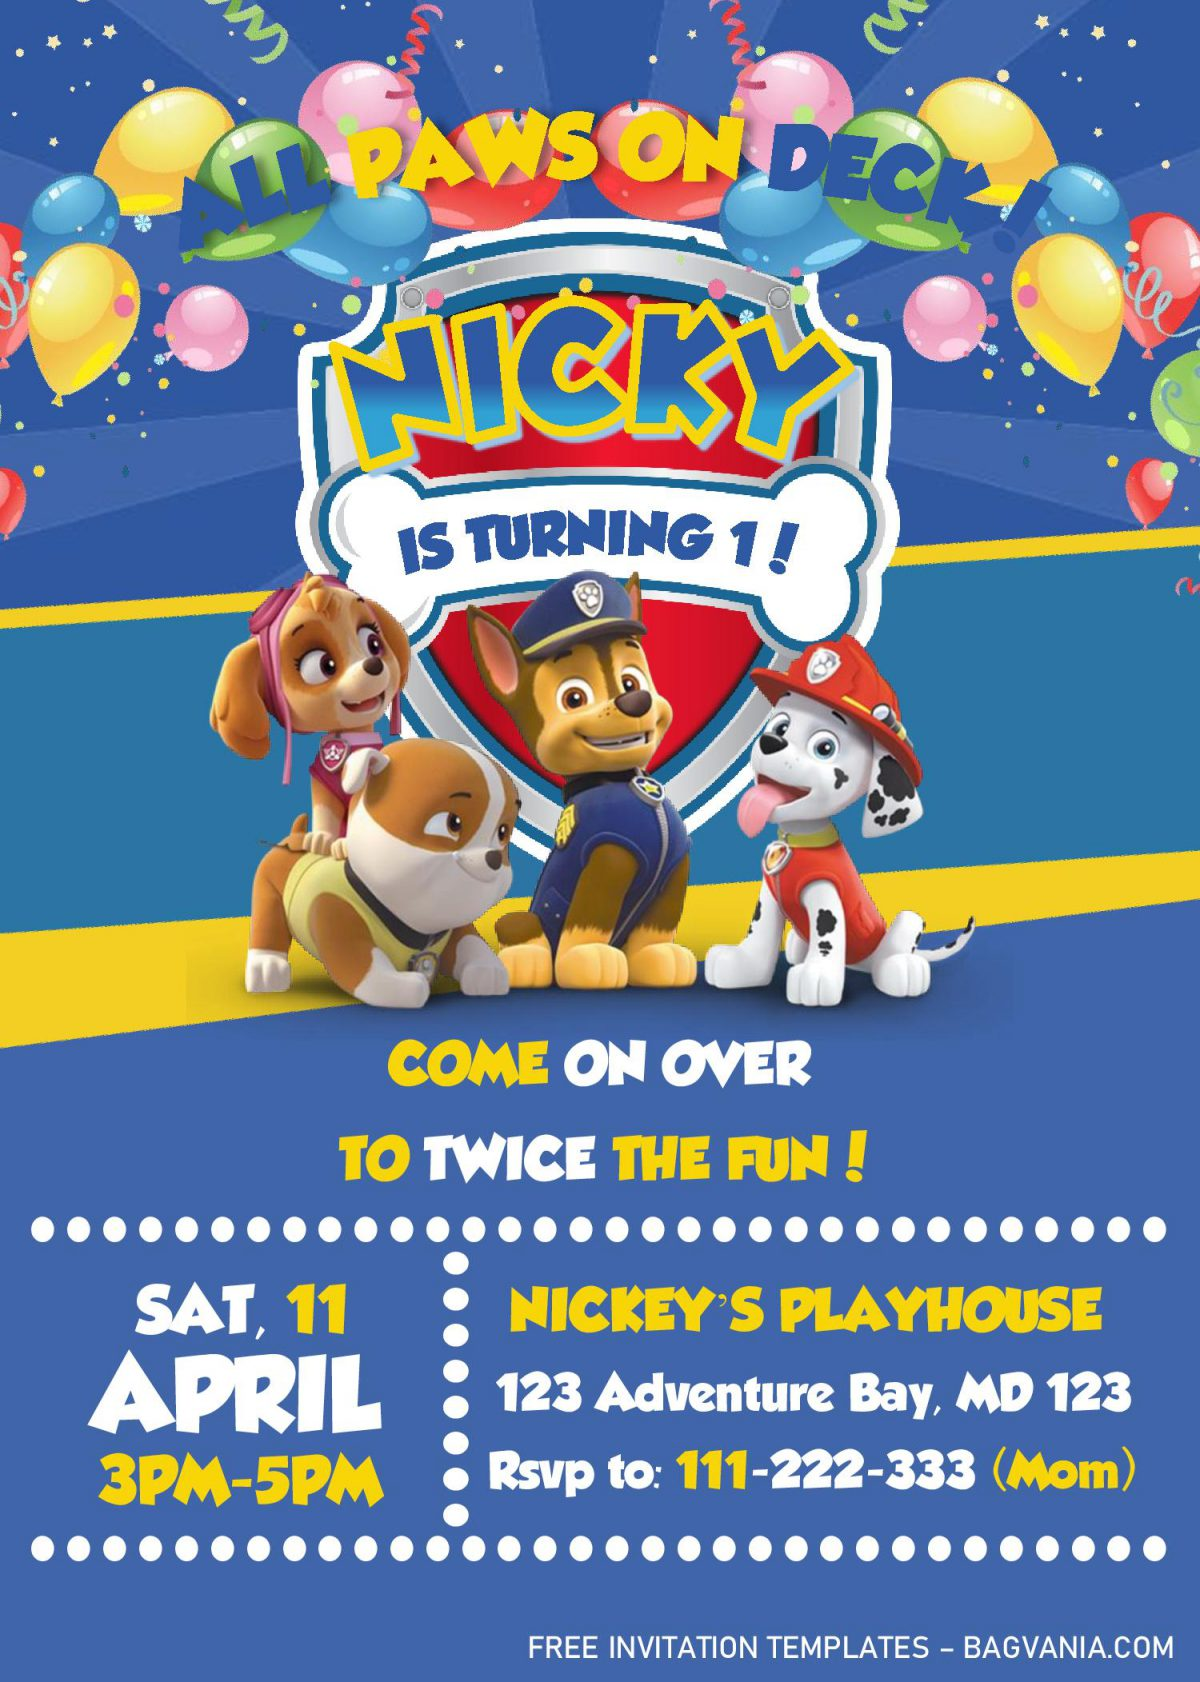 Paw Patrol Invitation Templates - Editable With MS Word and has Paw Patrol's Badge